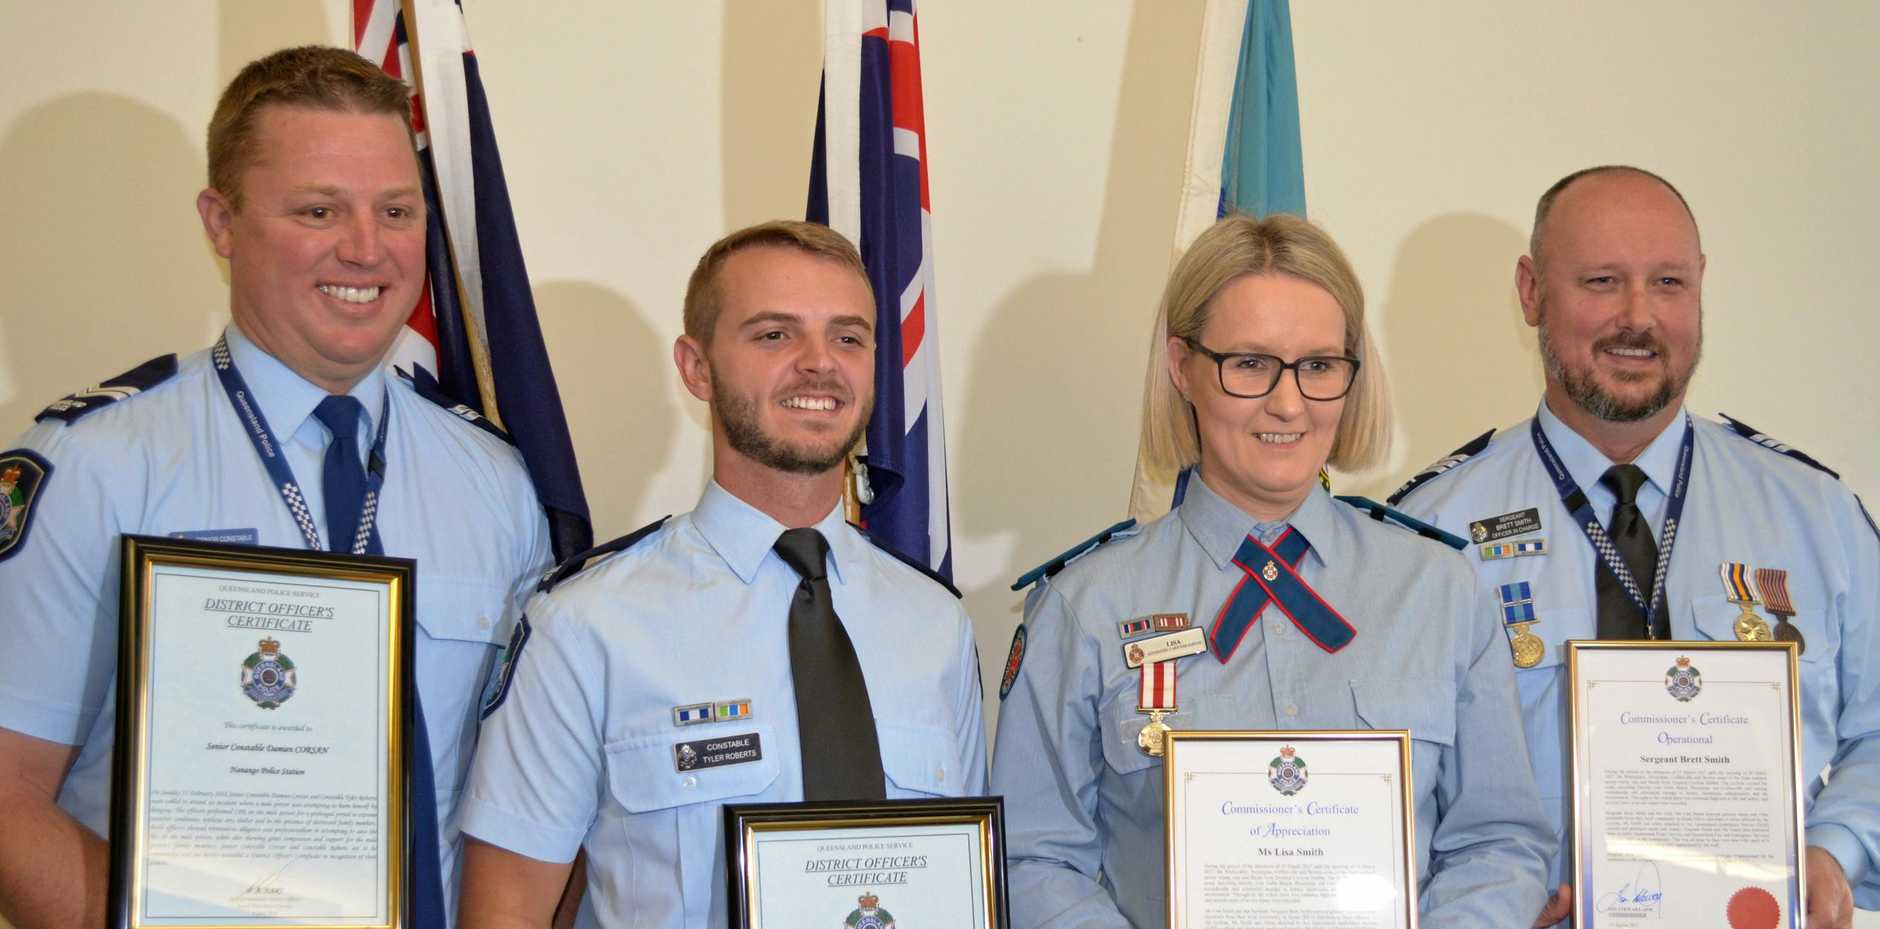 Snr Const Damien Corsan, Const Tyler Roberts, Lisa Smith and Snr Sgt Brett Smith were awarded for their service to the public.